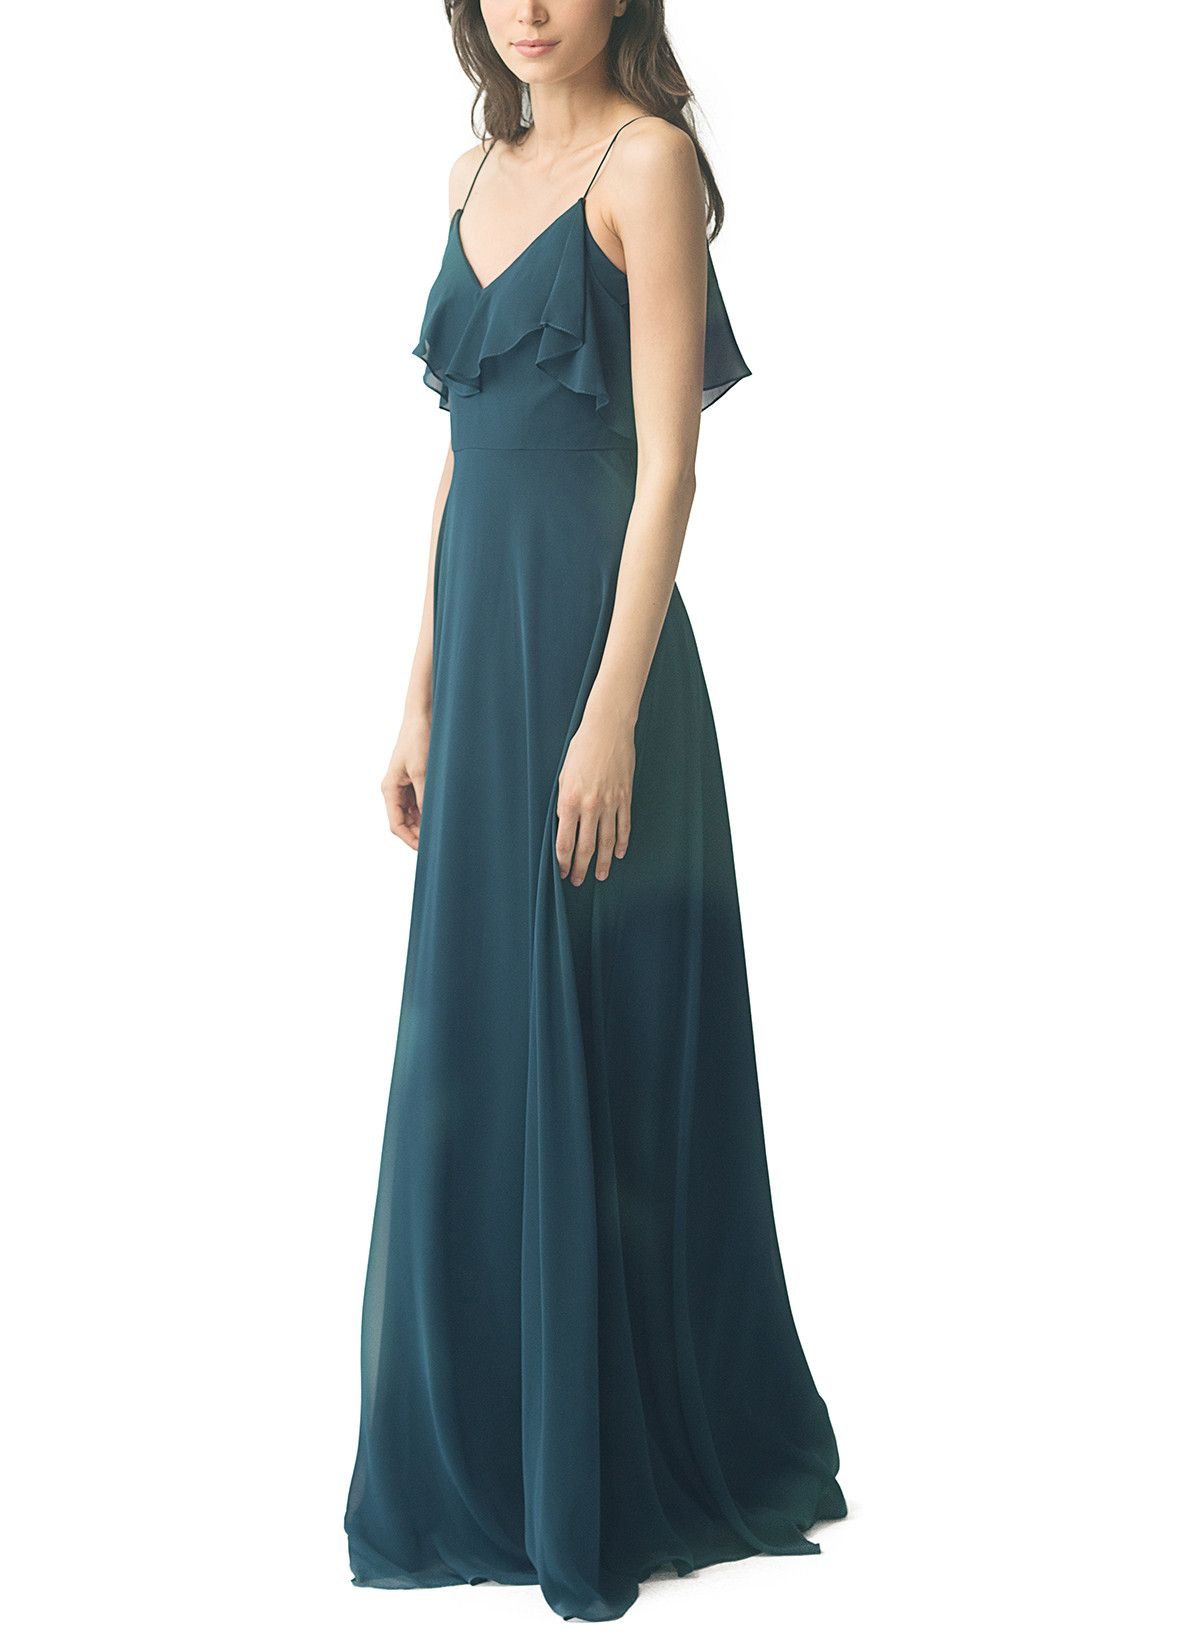 2a8fa7481cc Take a look at this gorgeous Jenny Yoo Mila bridesmaid dress in teal blue  fabric! Available in sizes 0-24 and tons of colors at Brideside.